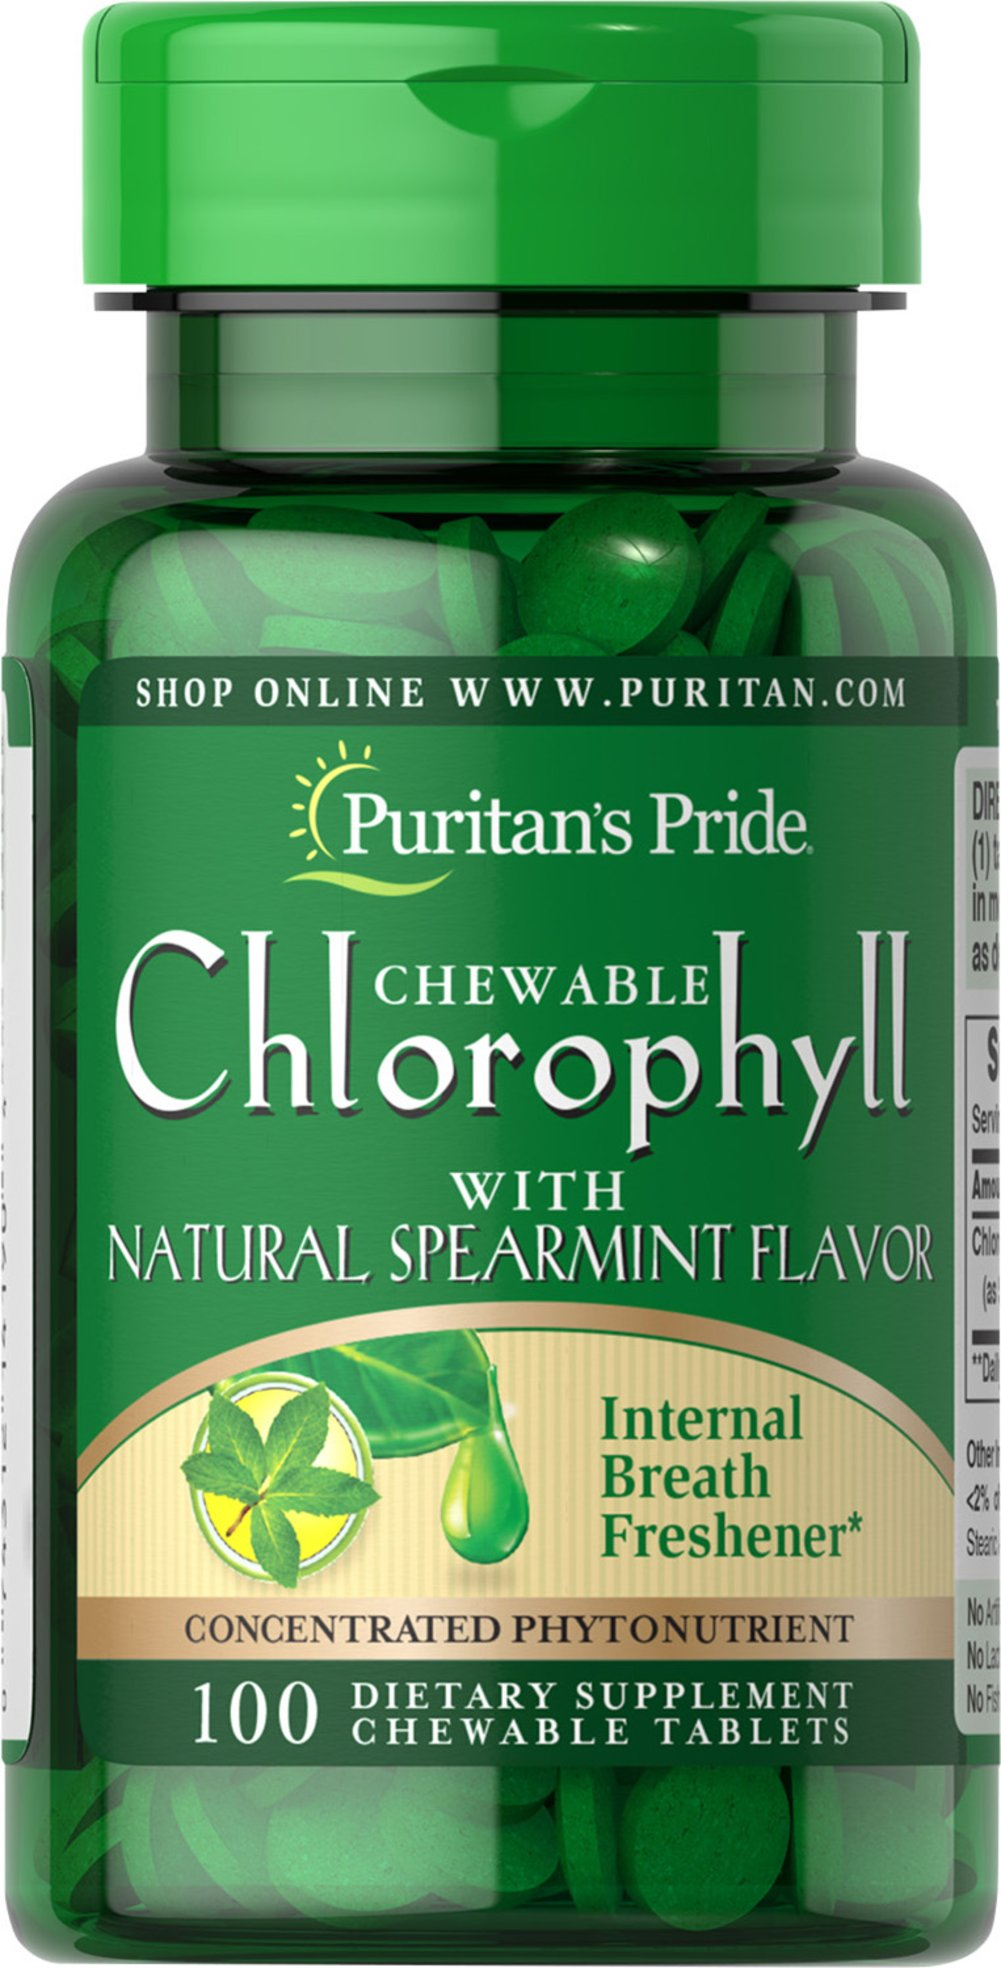 Chewable Chlorophyll with Natural Spearmint Flavor